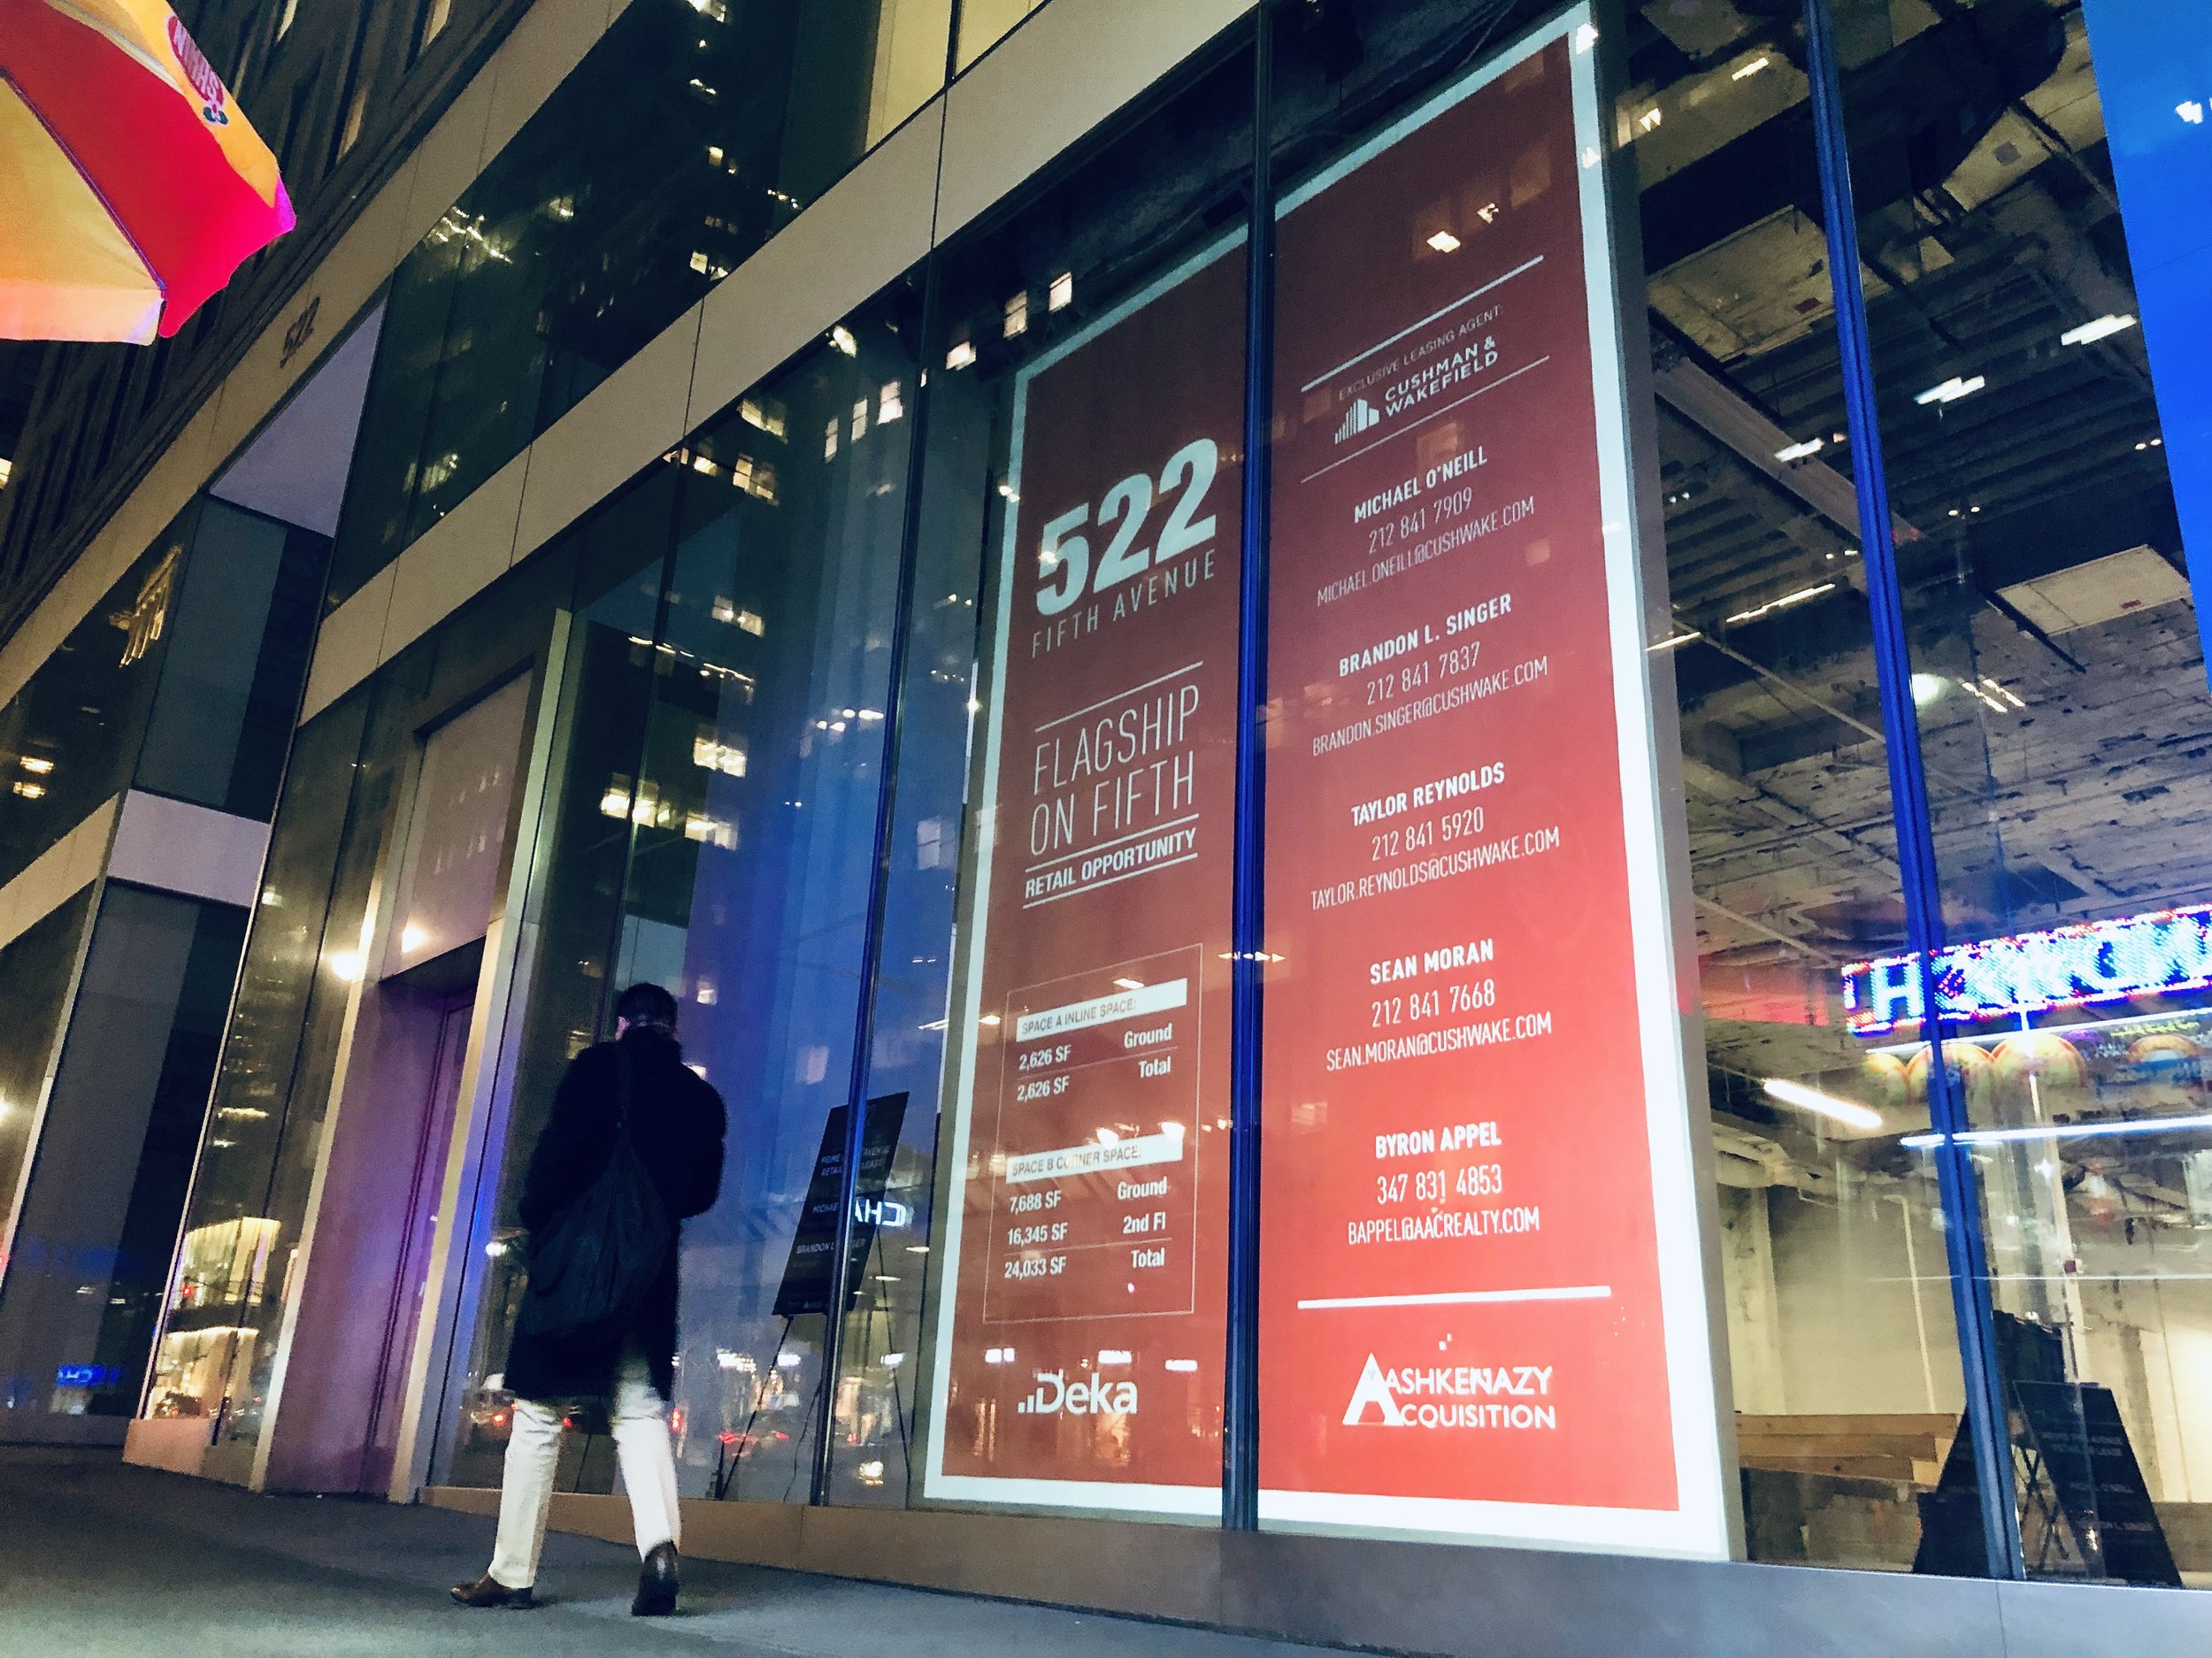 PROJECT FOR CUSHMAN & WAKEFIELD ON 5TH AVENUE IN NEW YORK CITY PHOTO: FRONTRUNNER TECHNOLOGIES